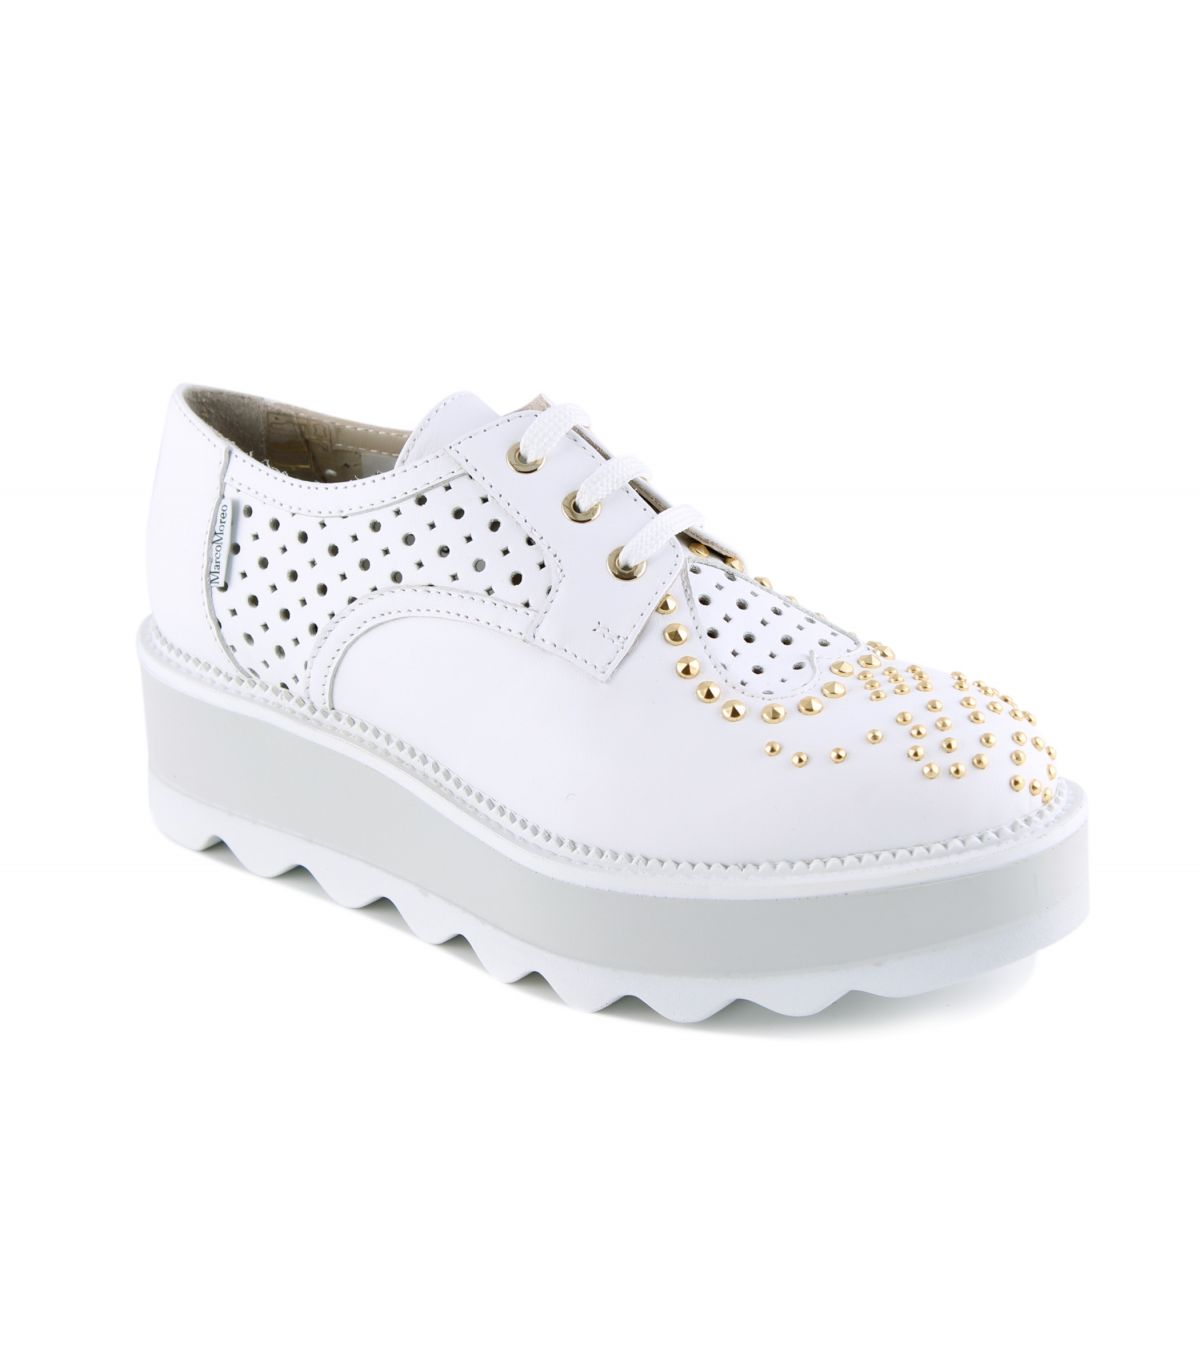 MARCO MOREO White Leather Wedge Brogue Dee Image